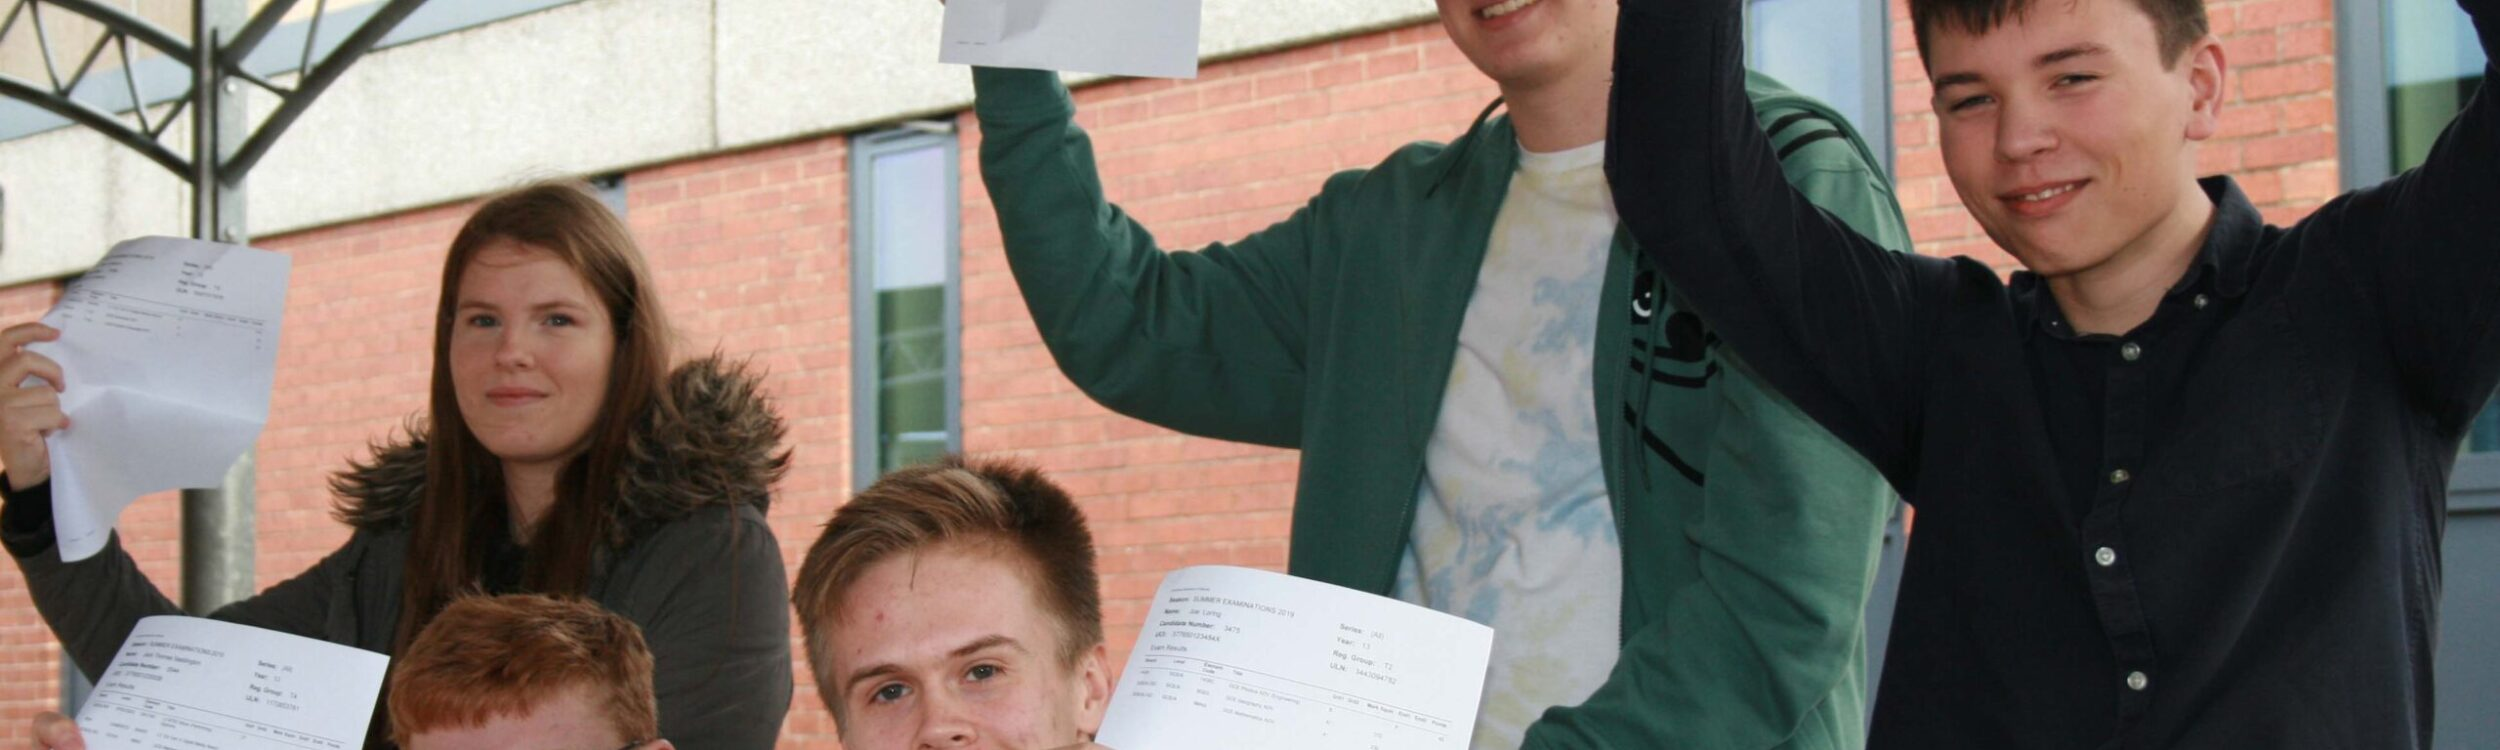 A group of Sixth Form students showing off their A-Level results